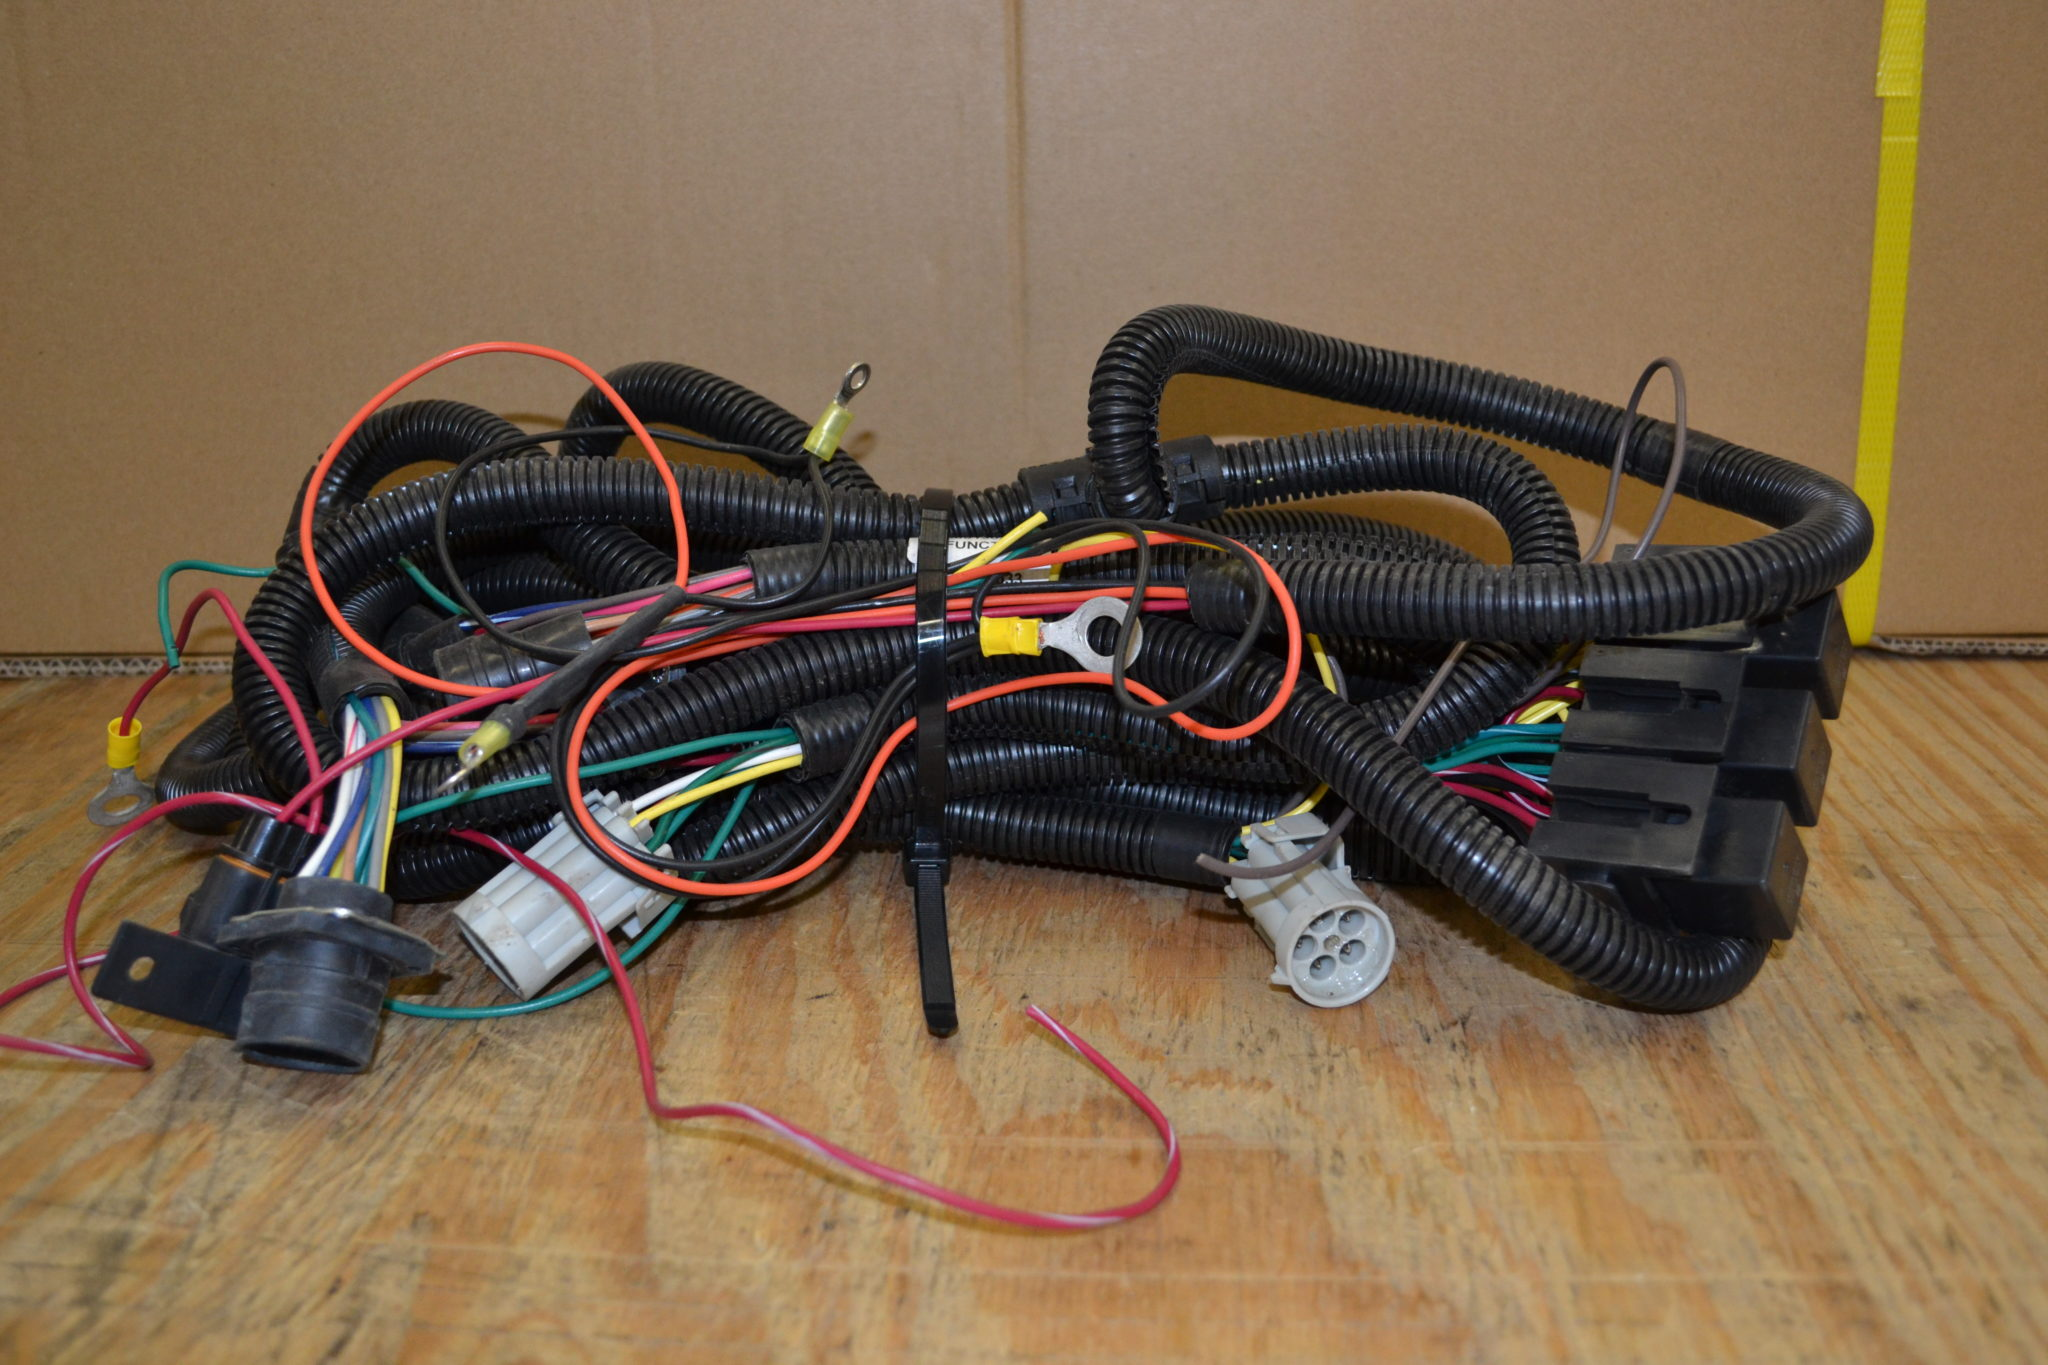 Hiniker Snowplow Underhood Wire Harness | Toppers and ... on